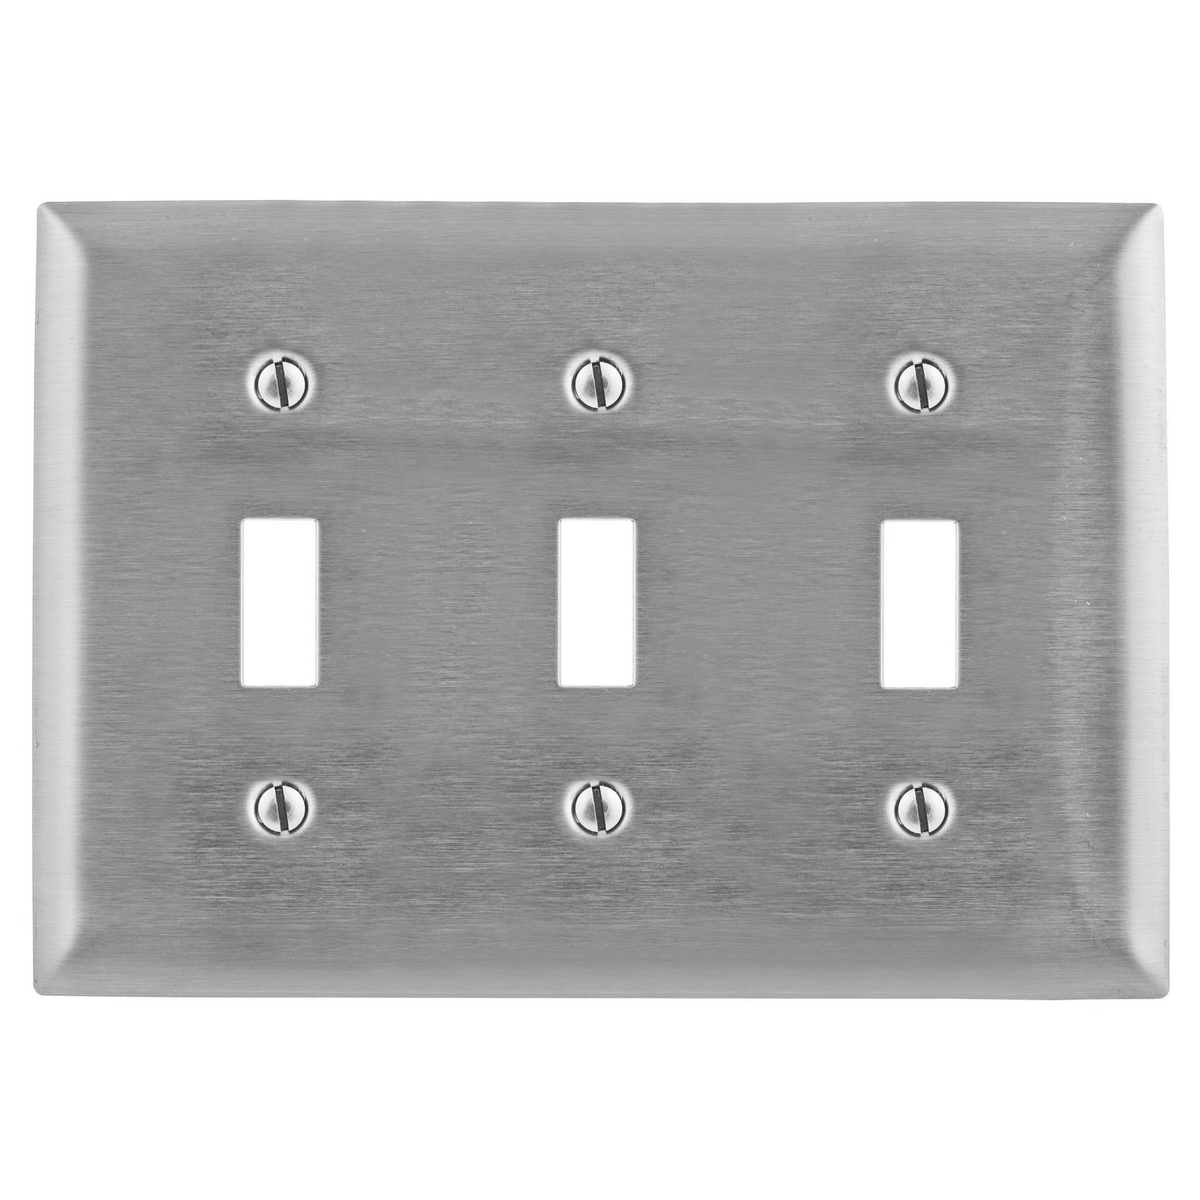 Hubbell SS3L 3-Gang Stainless Steel 3-Toggle Switch Screw Mount Wallplate